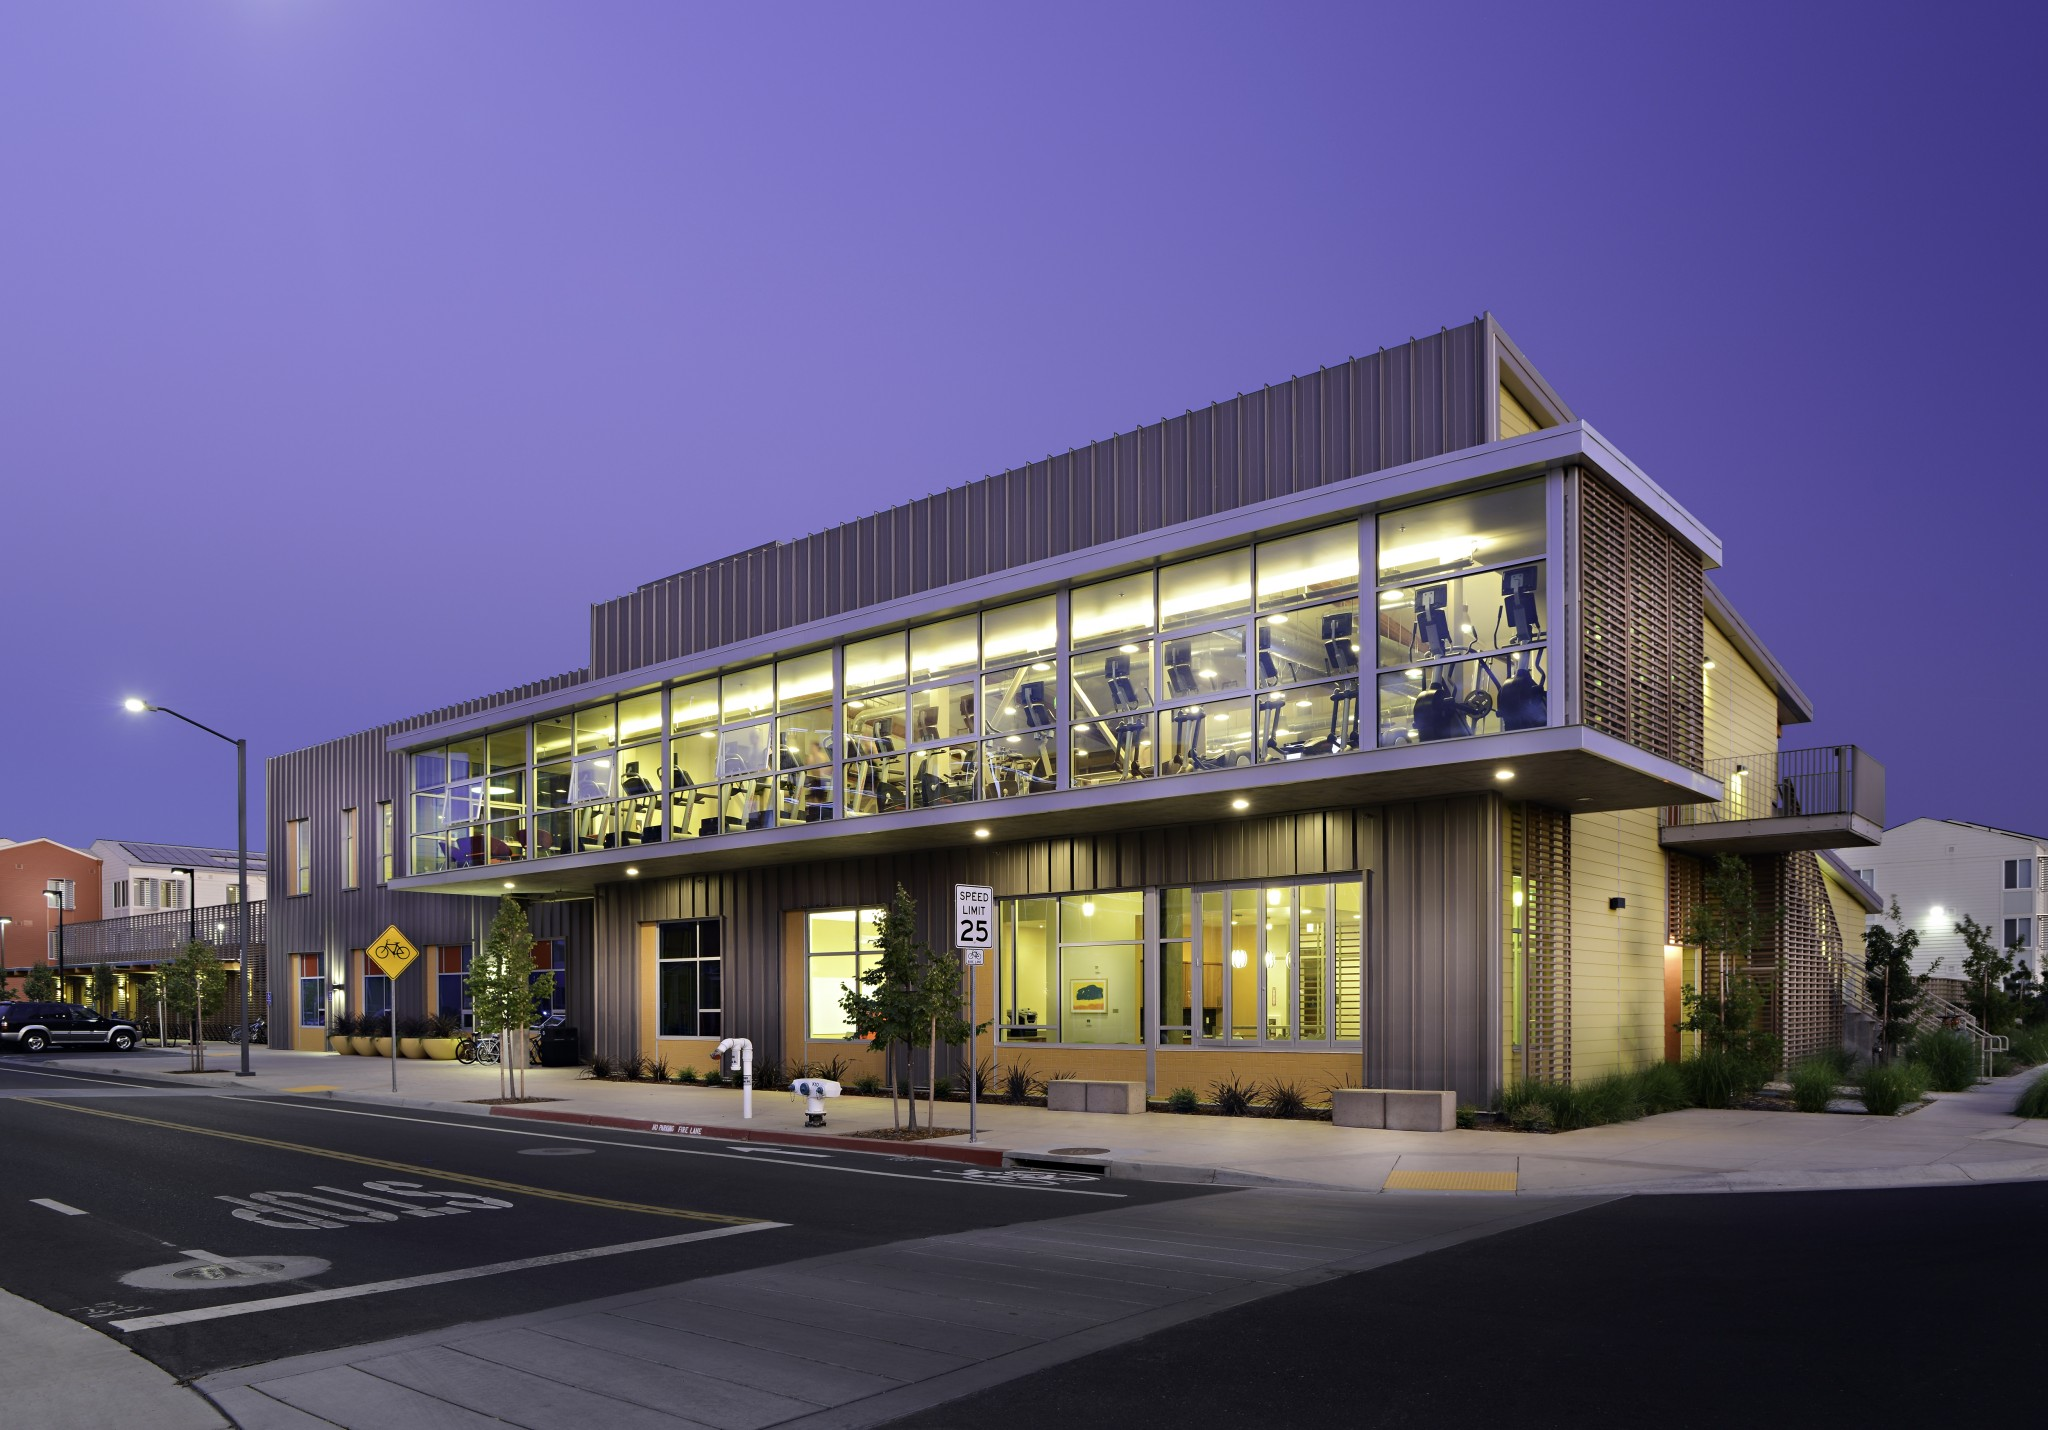 Exterior of modern building with a view of the fitness center on the second floor.